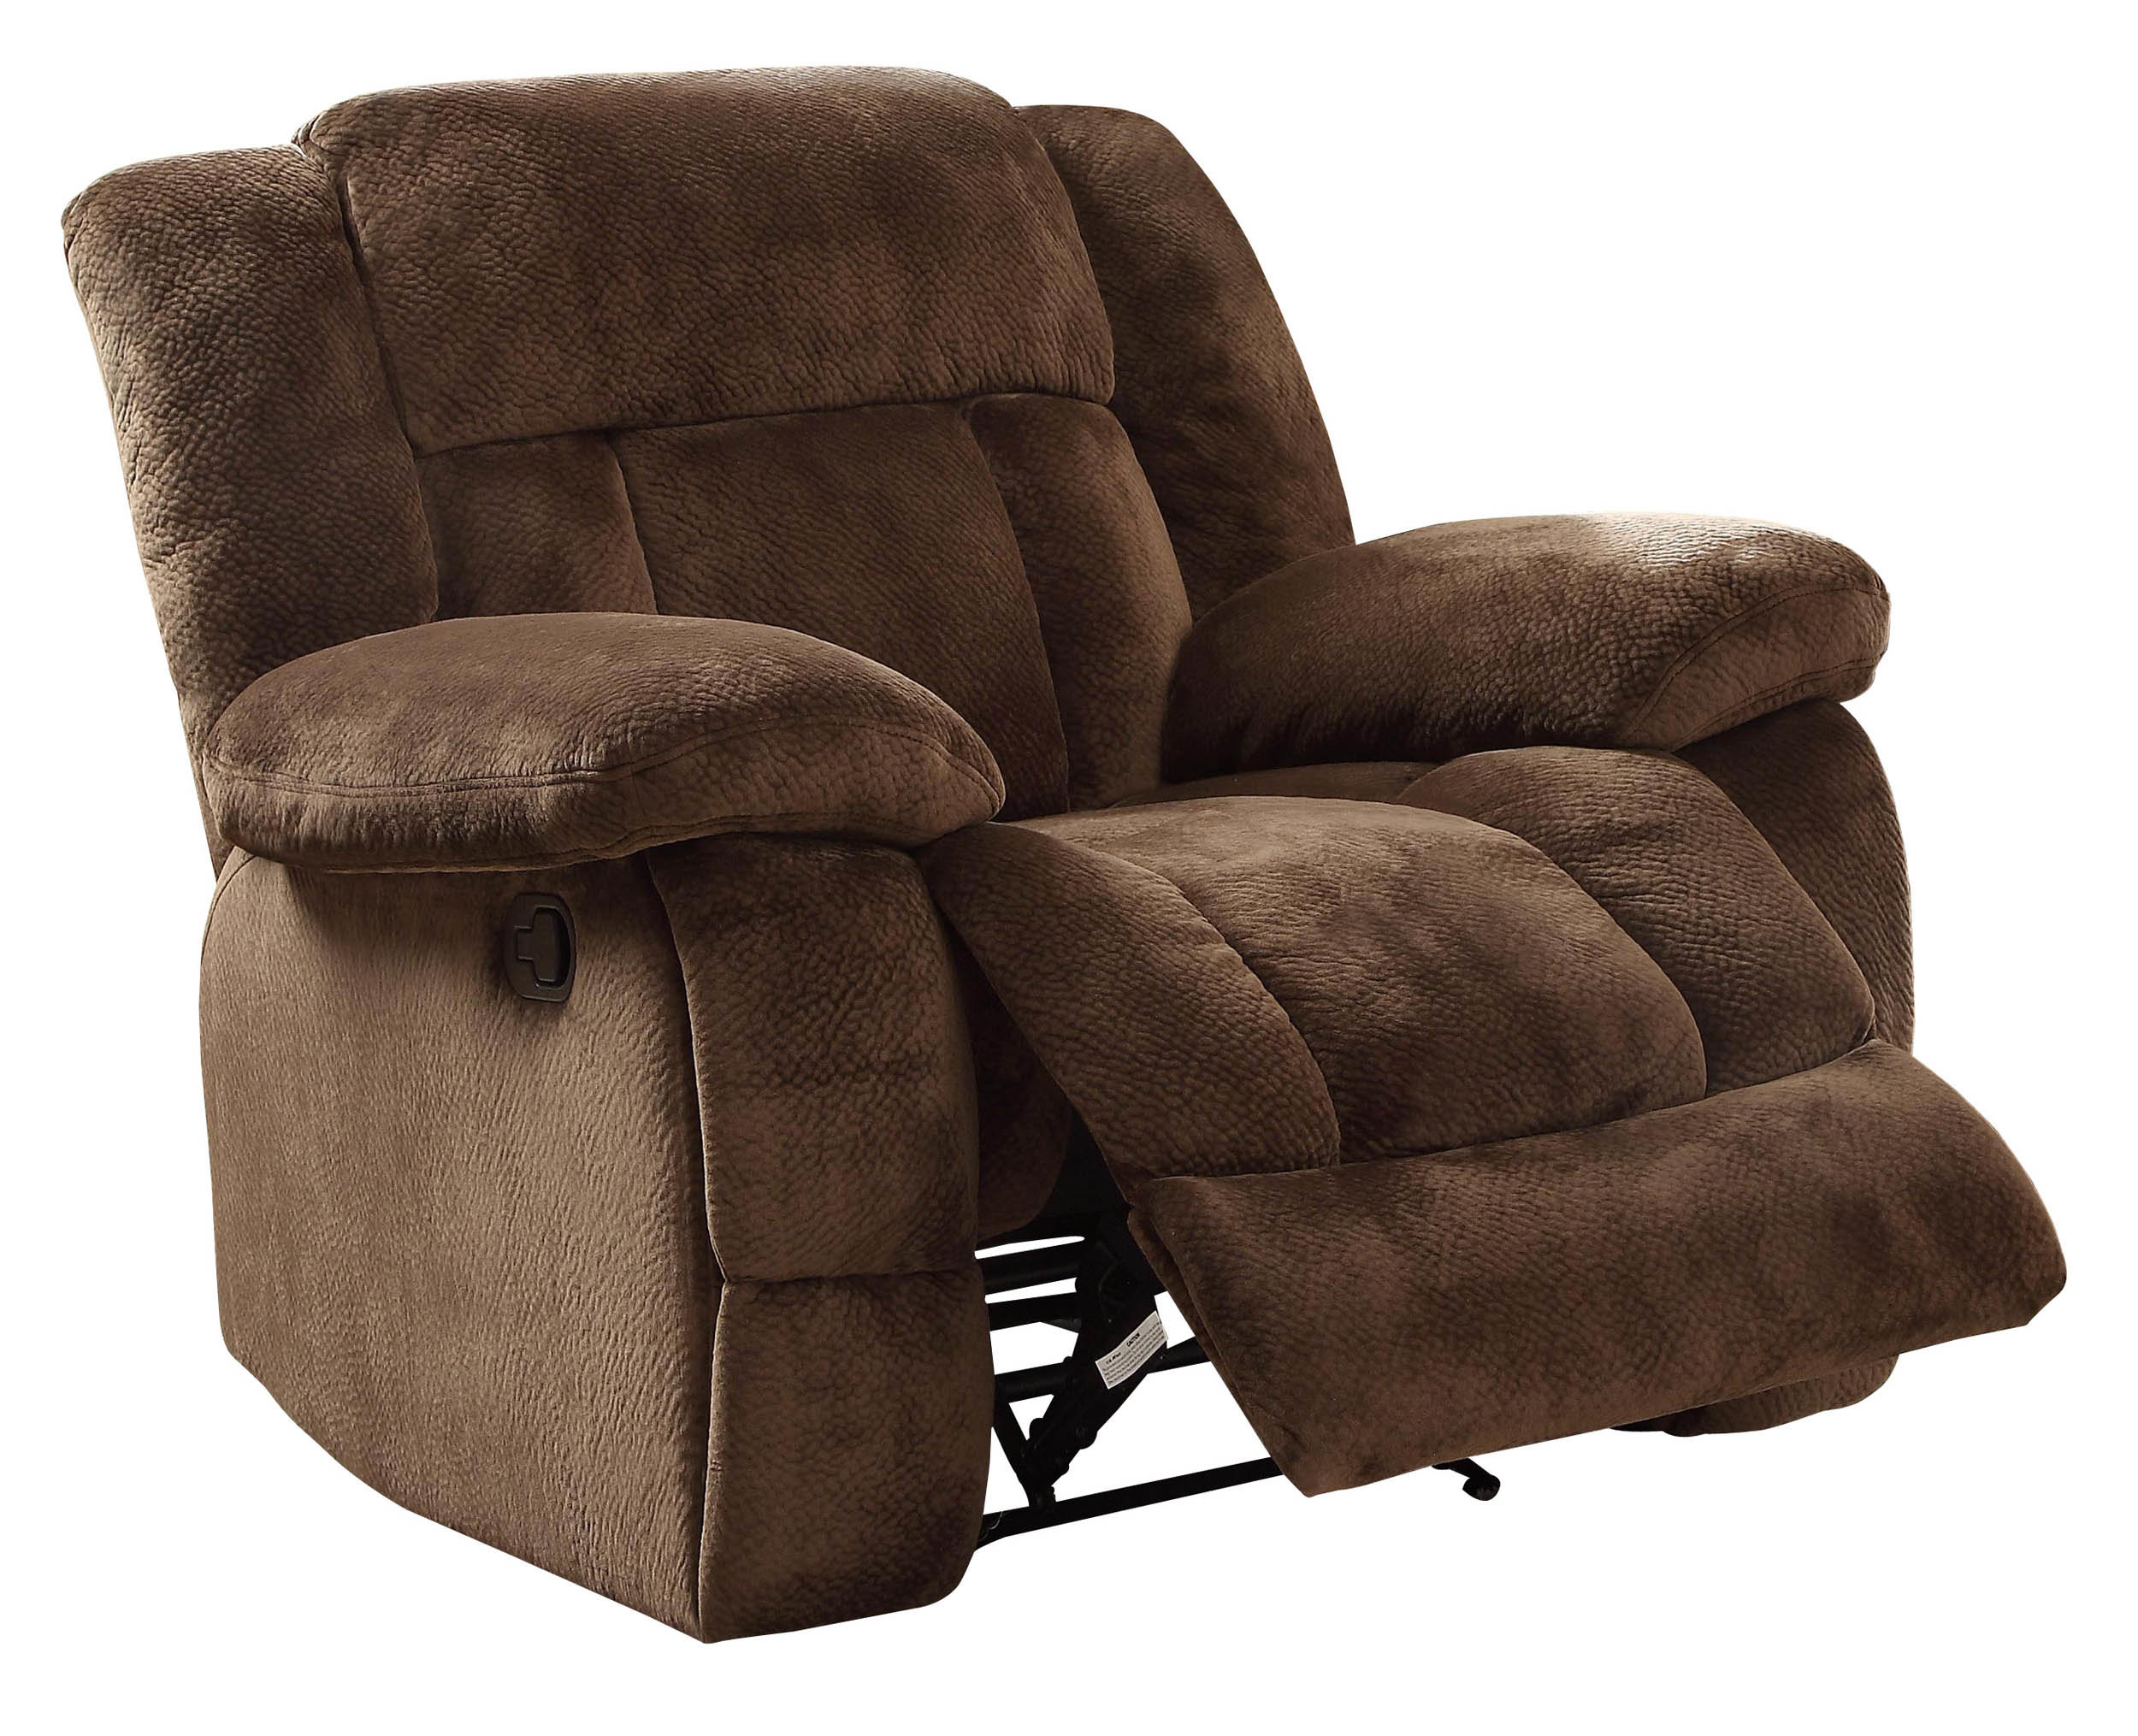 Darby Home Co Dale Manual Glider Recliner & Reviews | Wayfair with regard to Dale Iii Polyurethane Swivel Glider Recliners